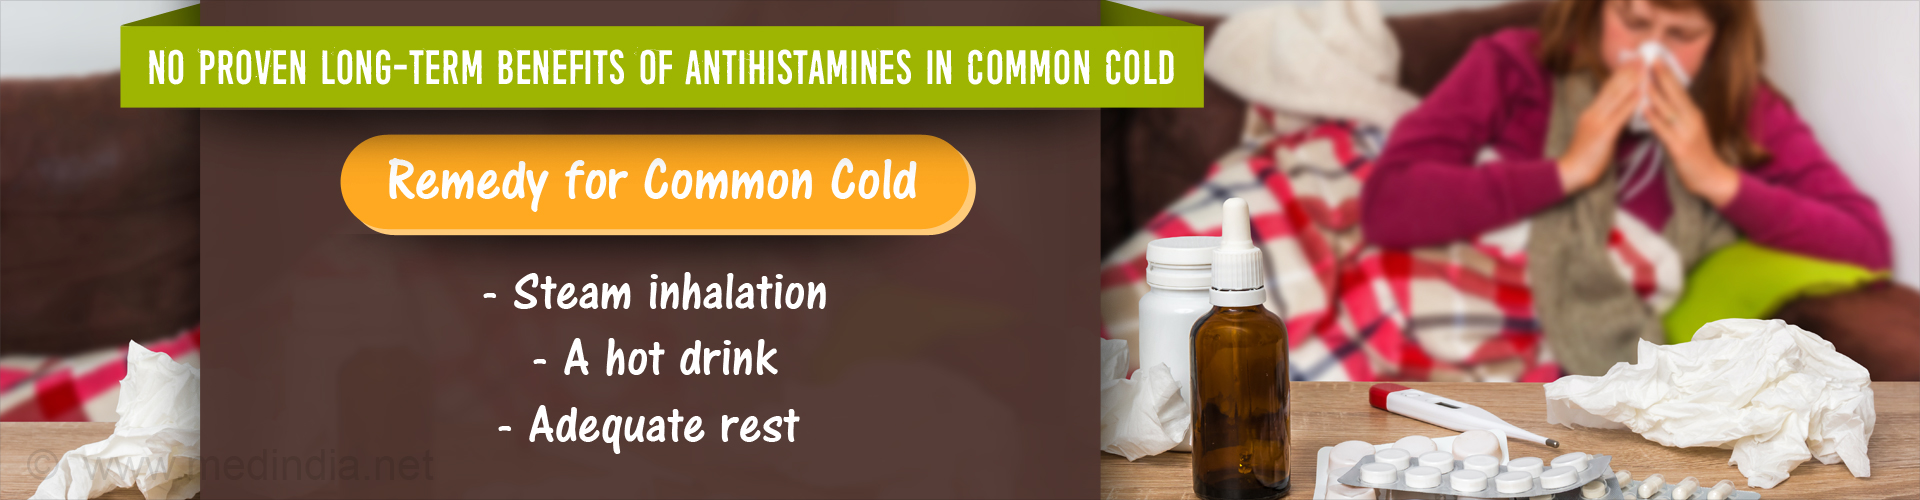 Antihistamines May Not Provide Long-term Relief from Common Cold